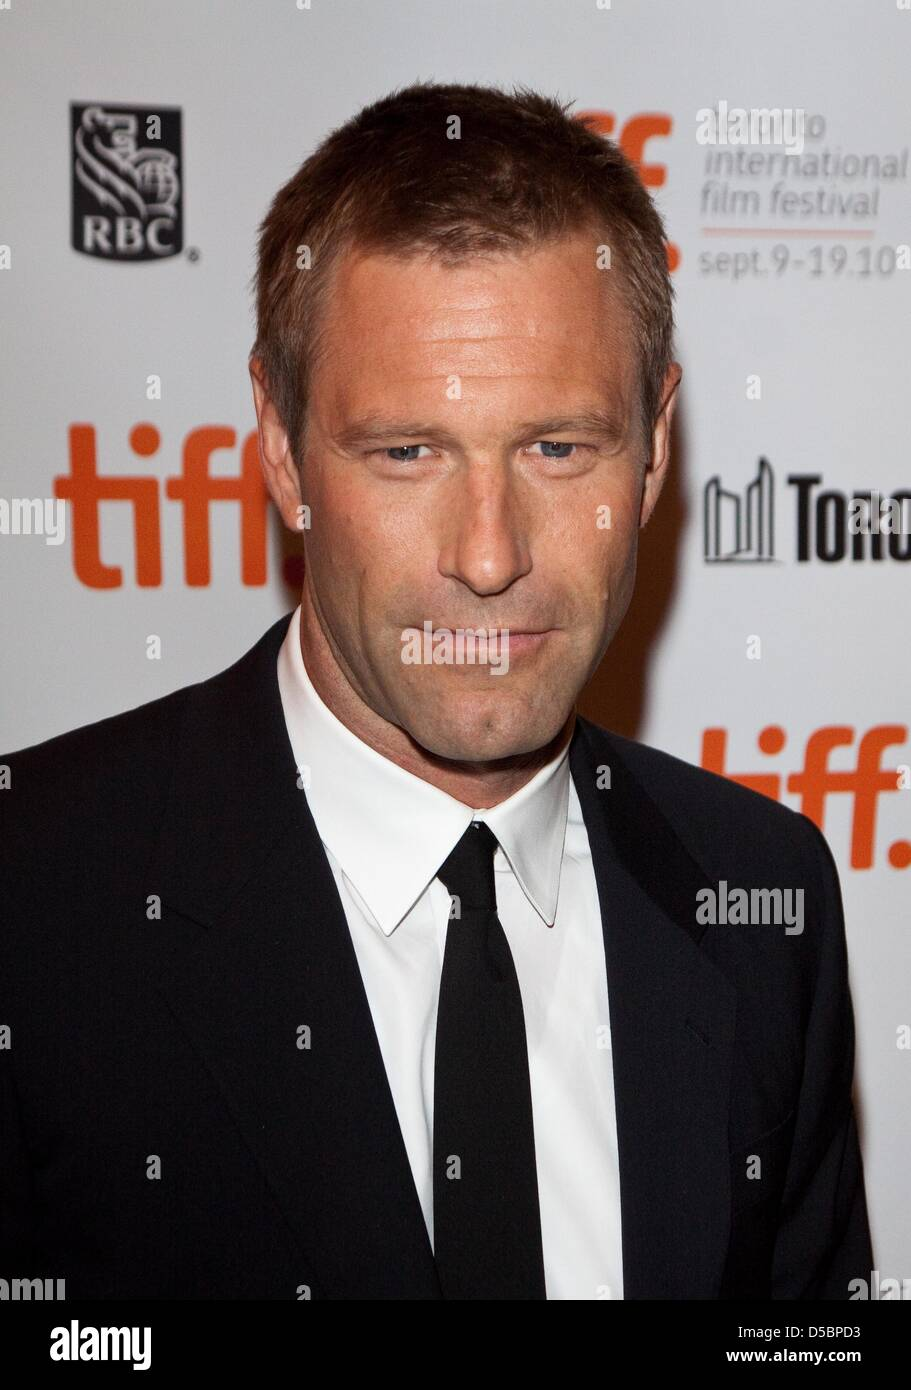 US Actor Aaron Eckhart Attends The Premiere Of Rabbit Hole During 35th Annual Film Festival In Toronto Canada 13 September 2010